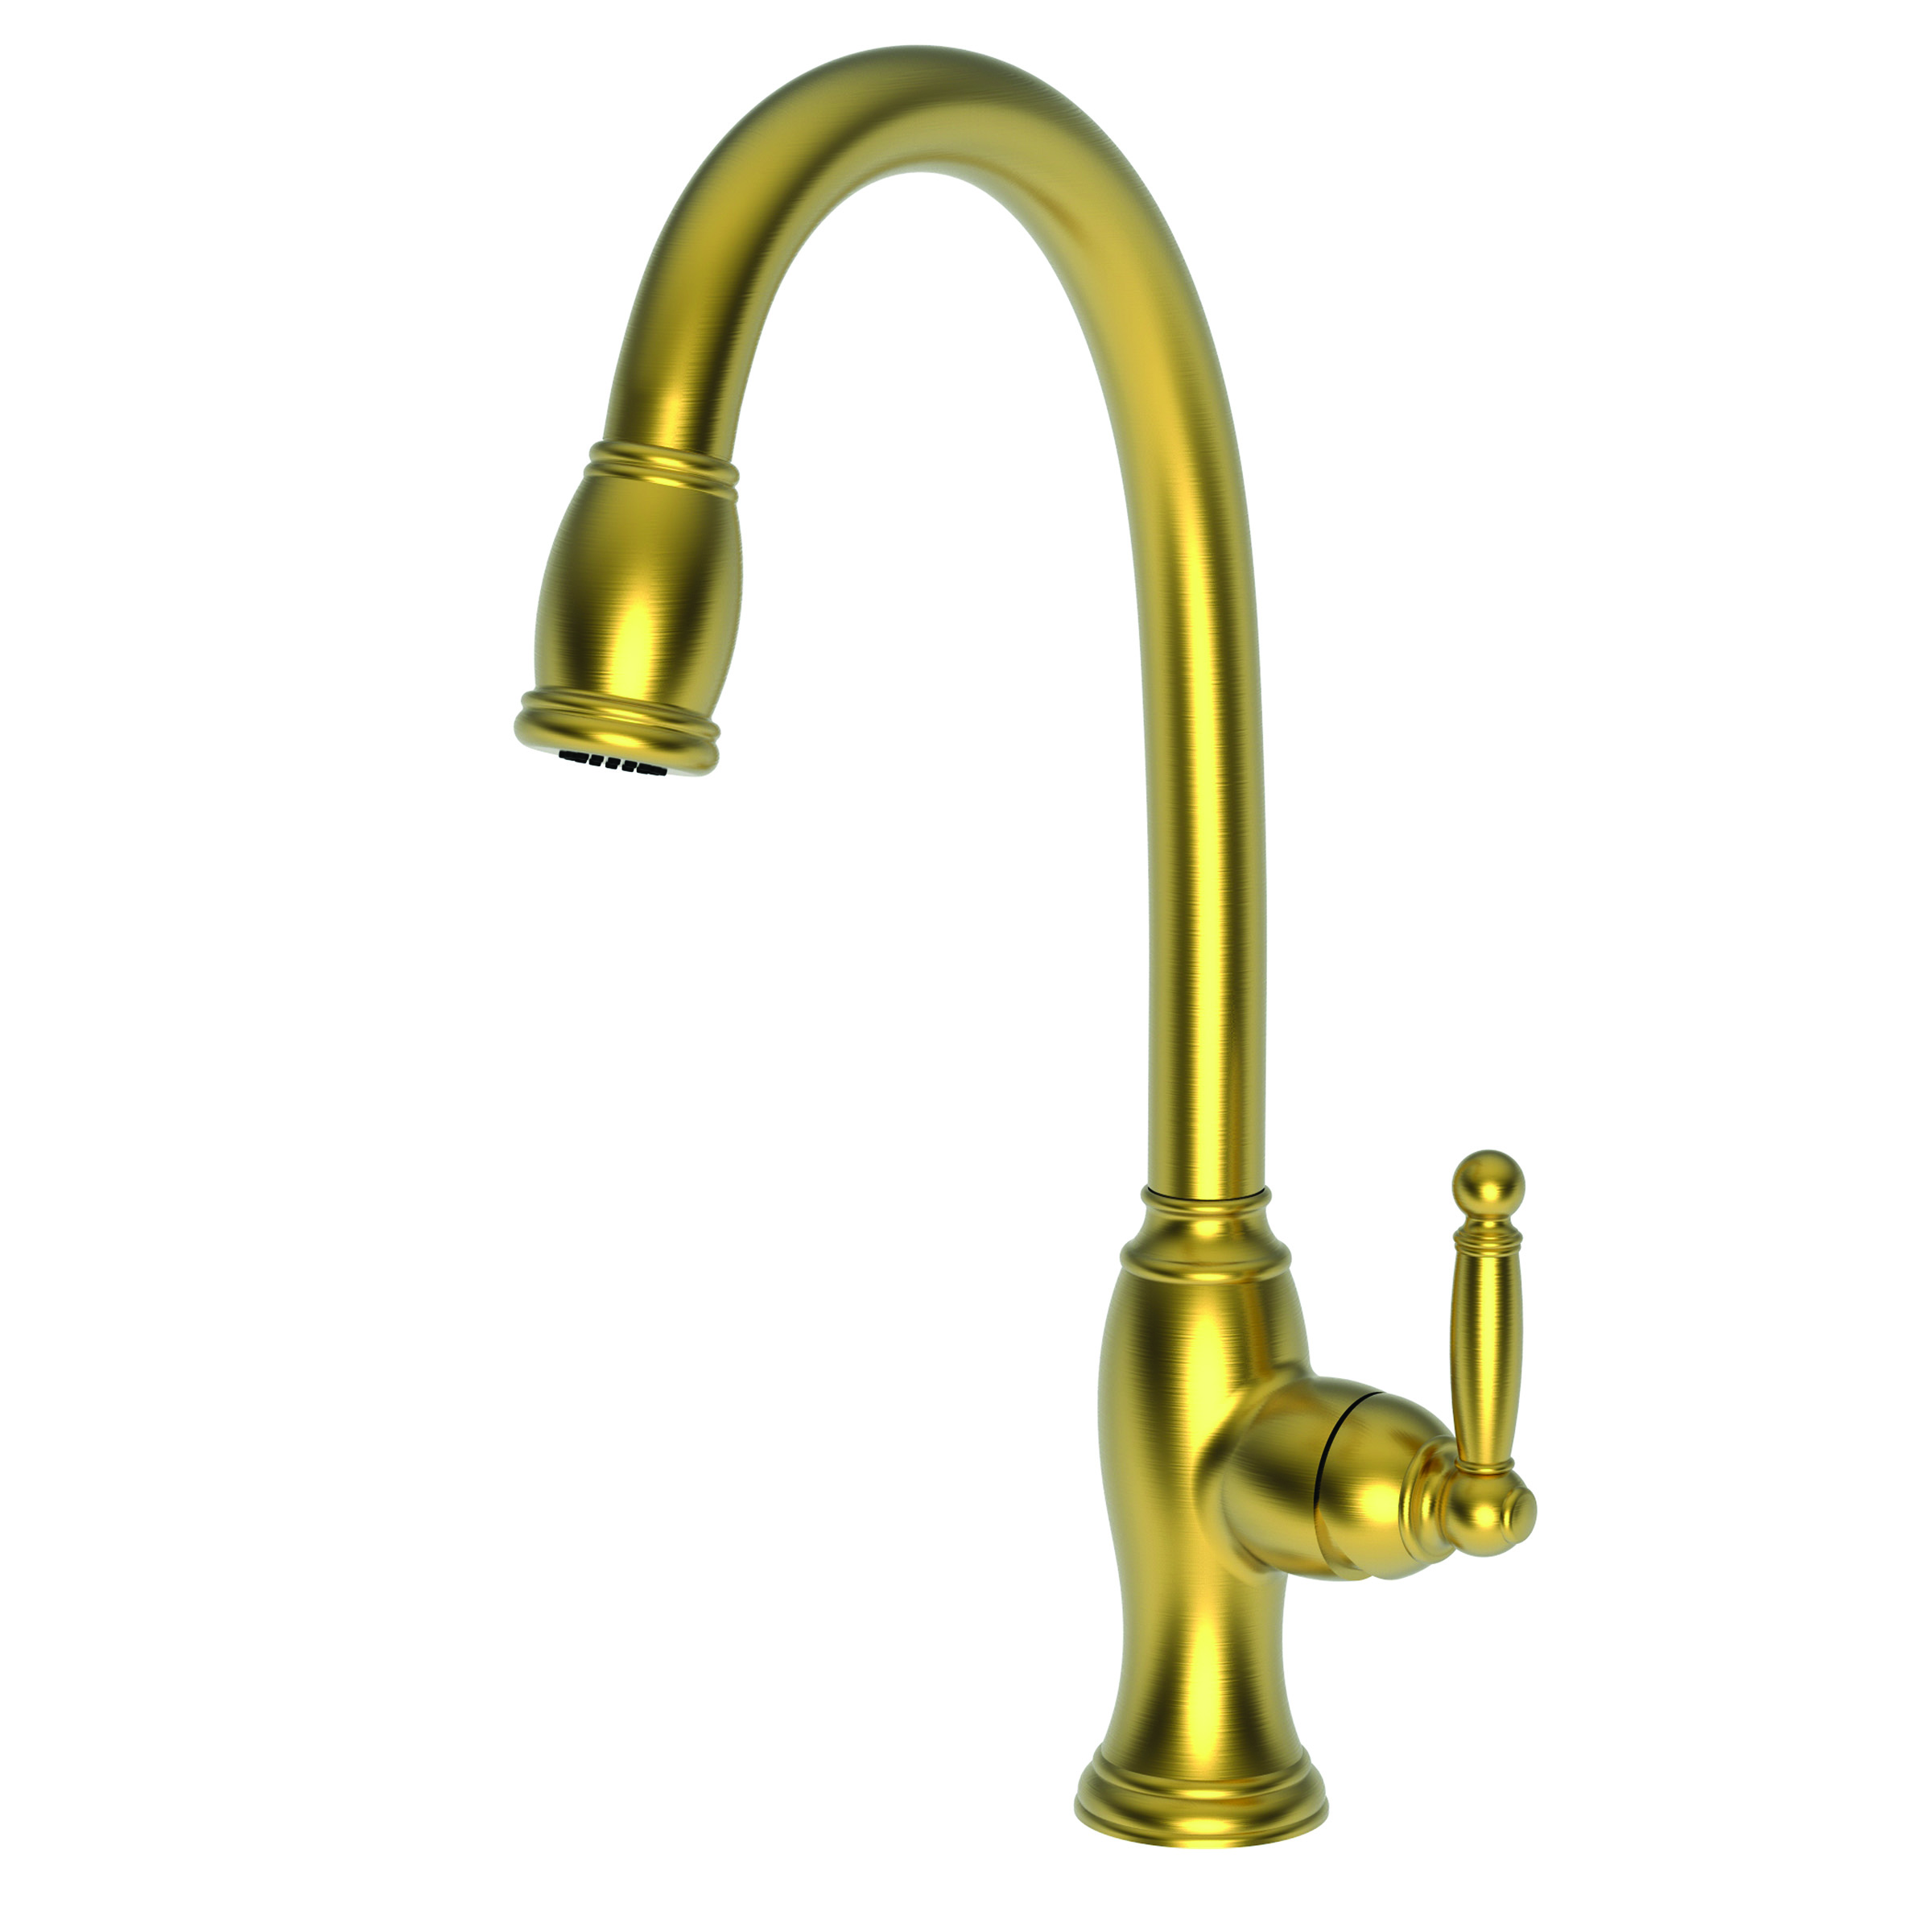 Newport Brass 2510 5103 Pull Down Kitchen Faucet Newport Brass Faucets